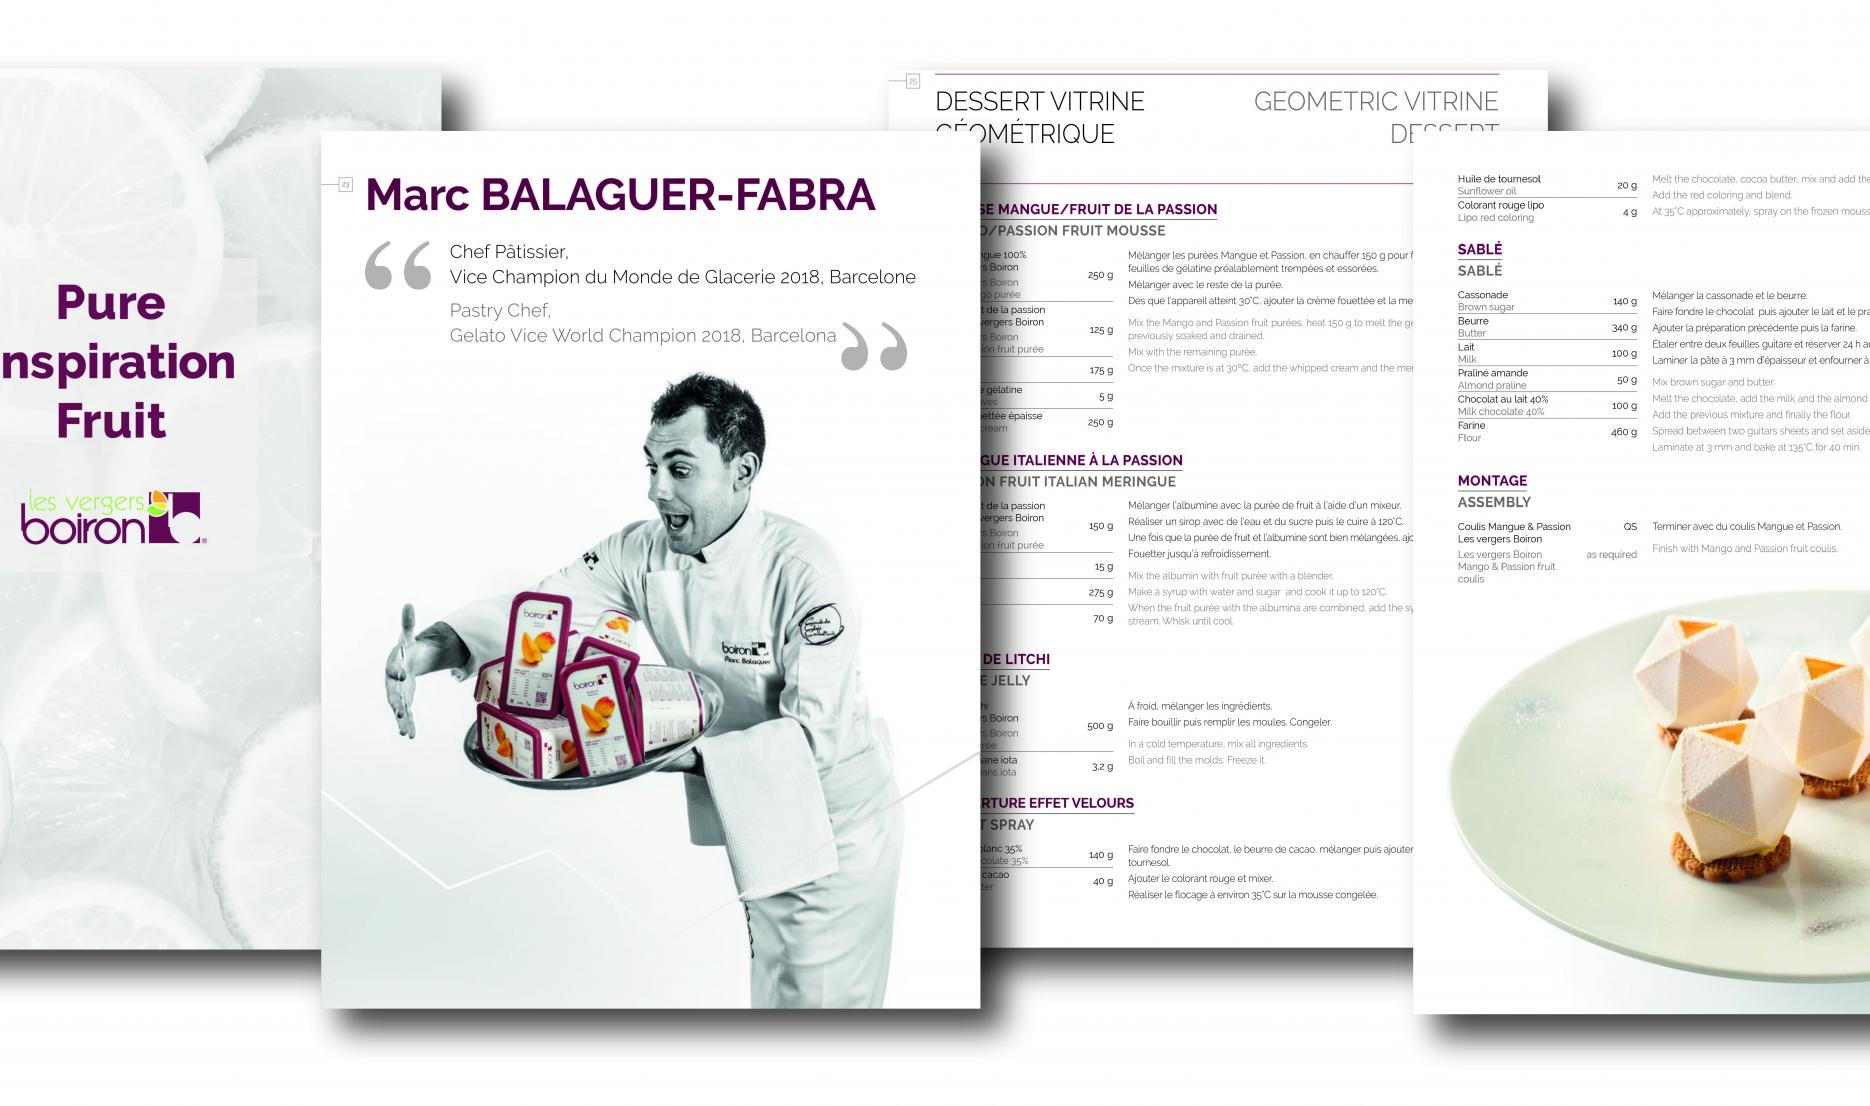 "Les vergers Boiron edit ""Pure Inspiration Fruit"", a recipe book featuring current trends to inspire chefs around the world"